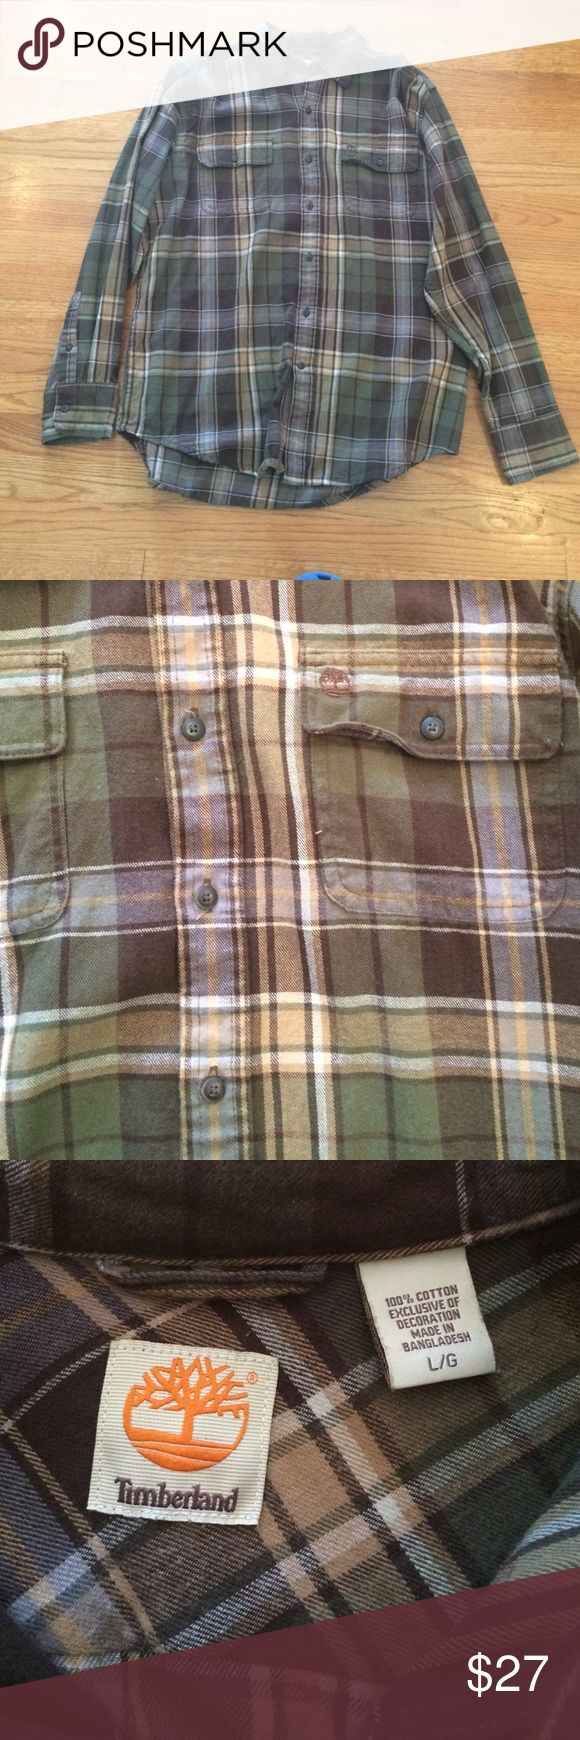 Timberland Flannel Button Down This is a brand new, never been worn, soft 100% cotton flannel shirt by Timberland. Size medium, classic fit (not snug like a modern fit). Timberland Shirts Casual Button Down Shirts